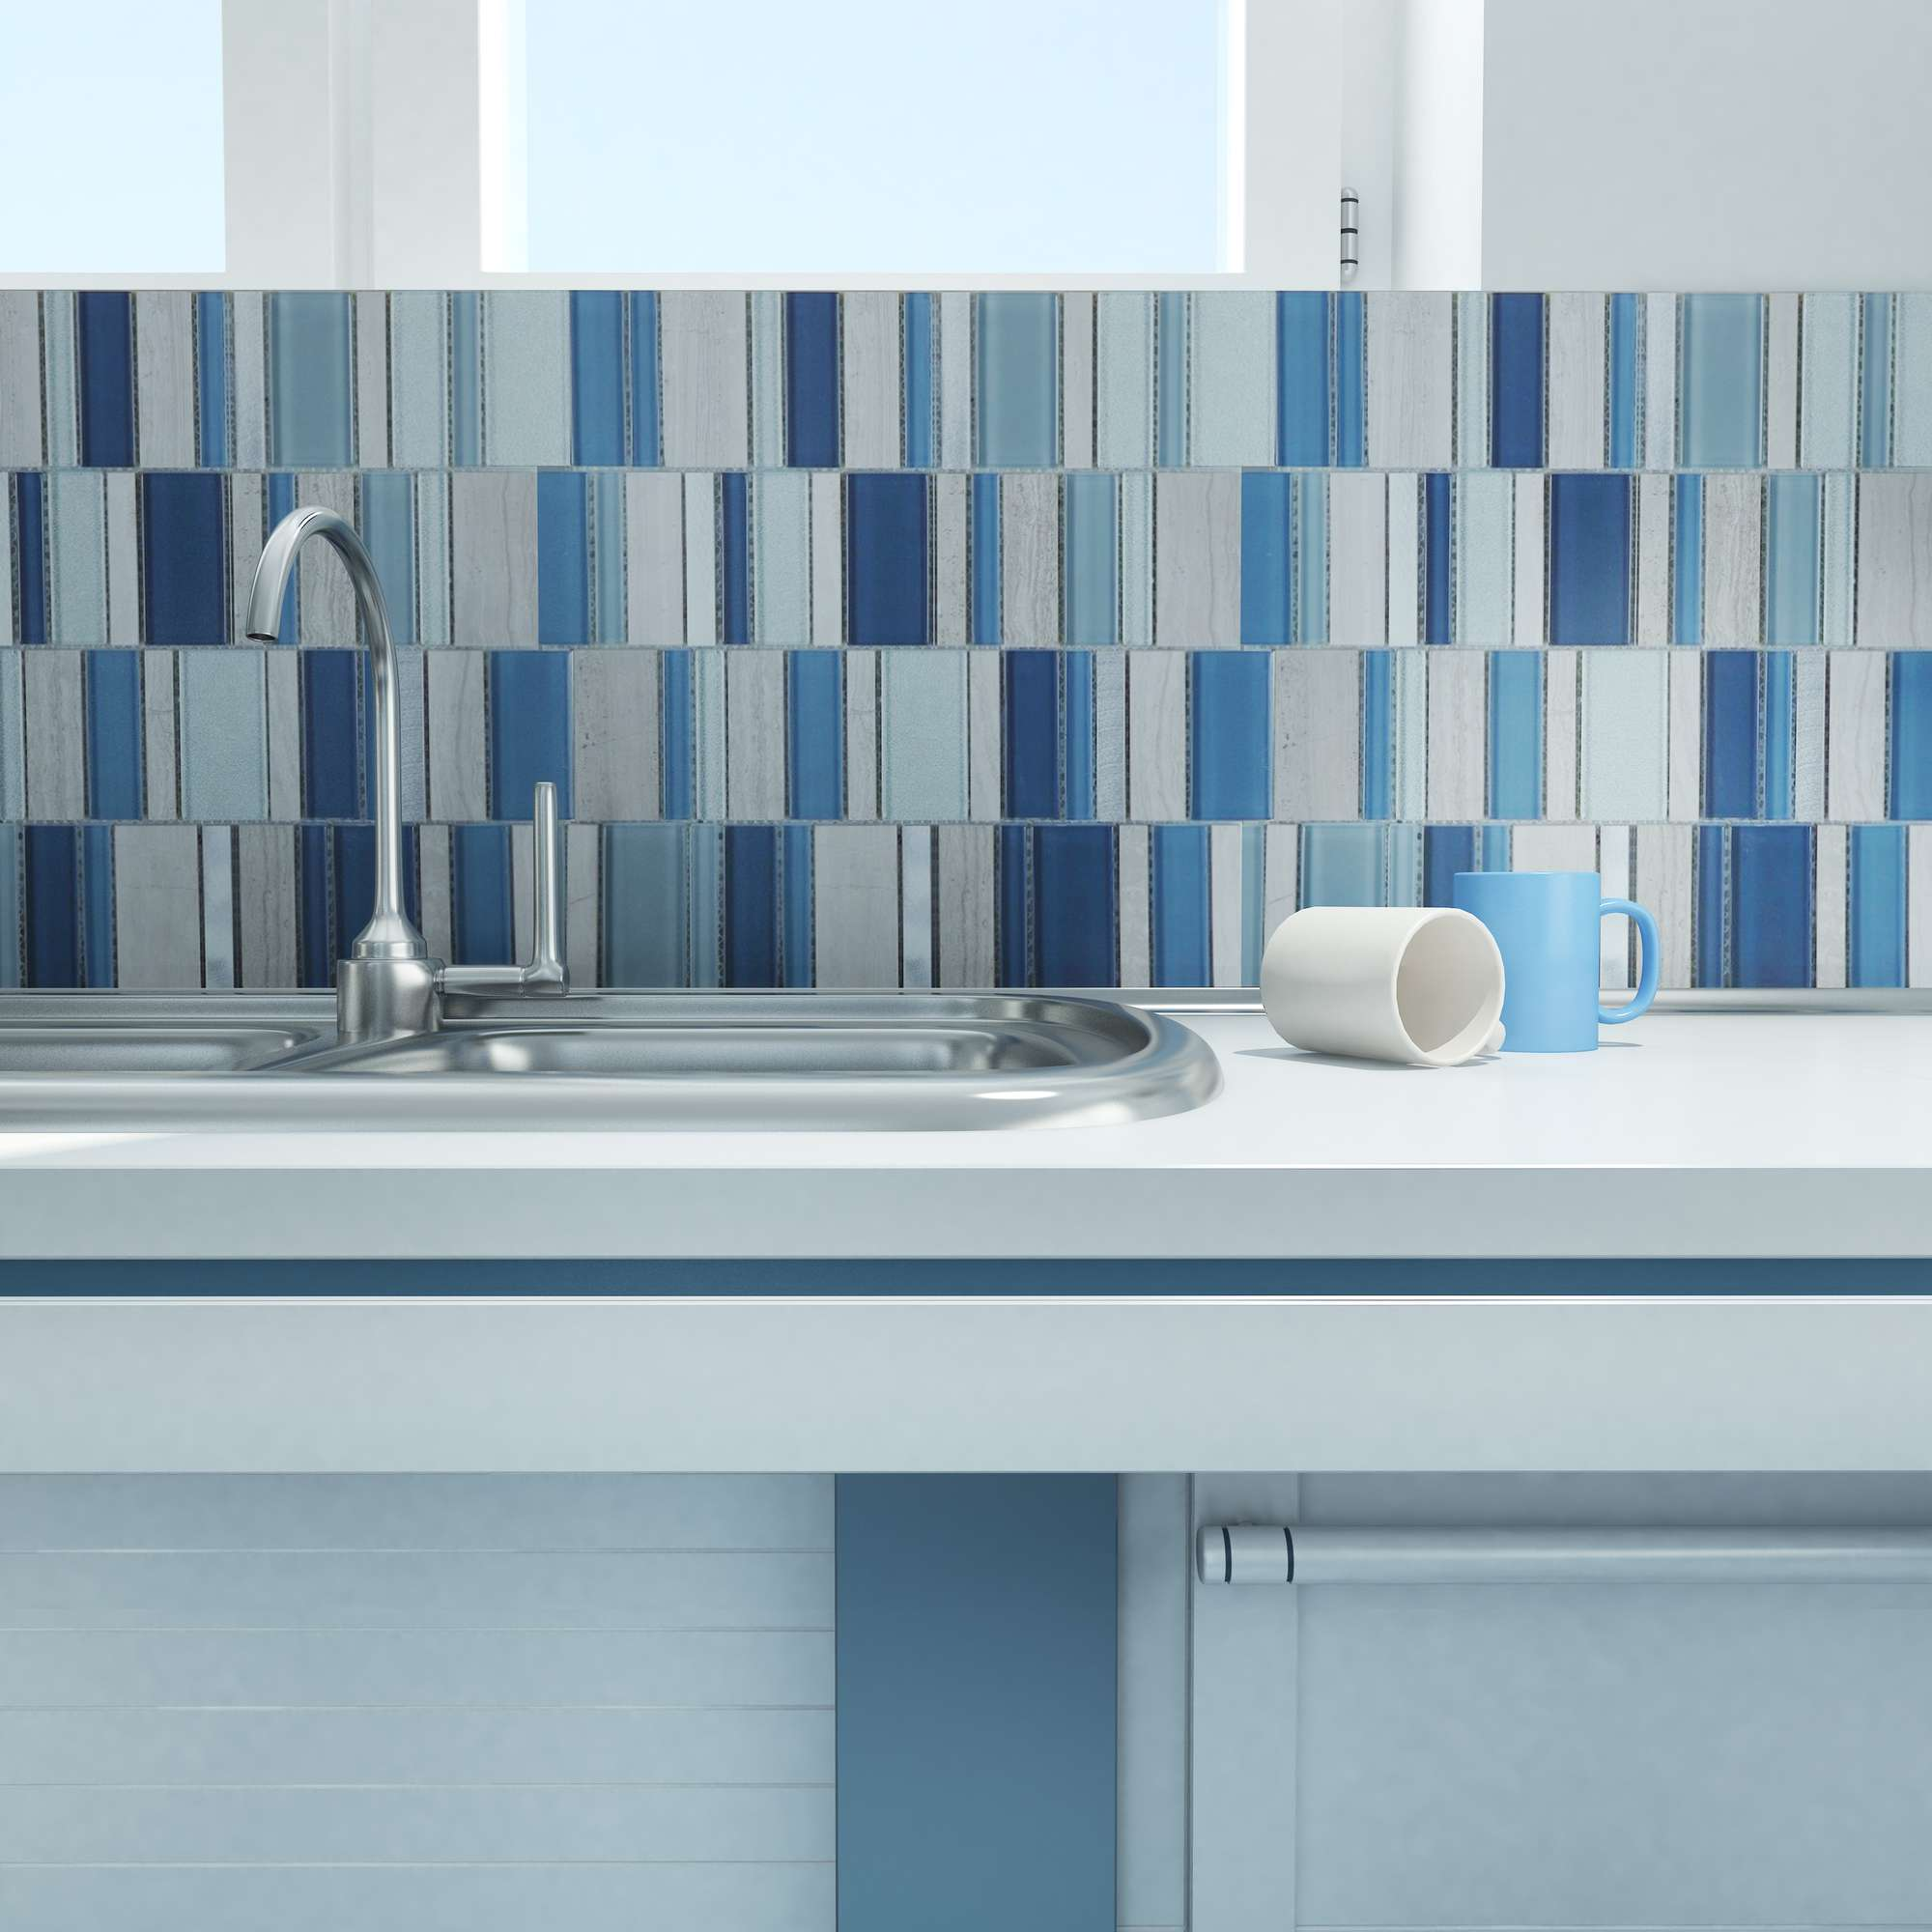 Tired of Your Kitchen Backsplash? Time to Update! - Mozaico Blog